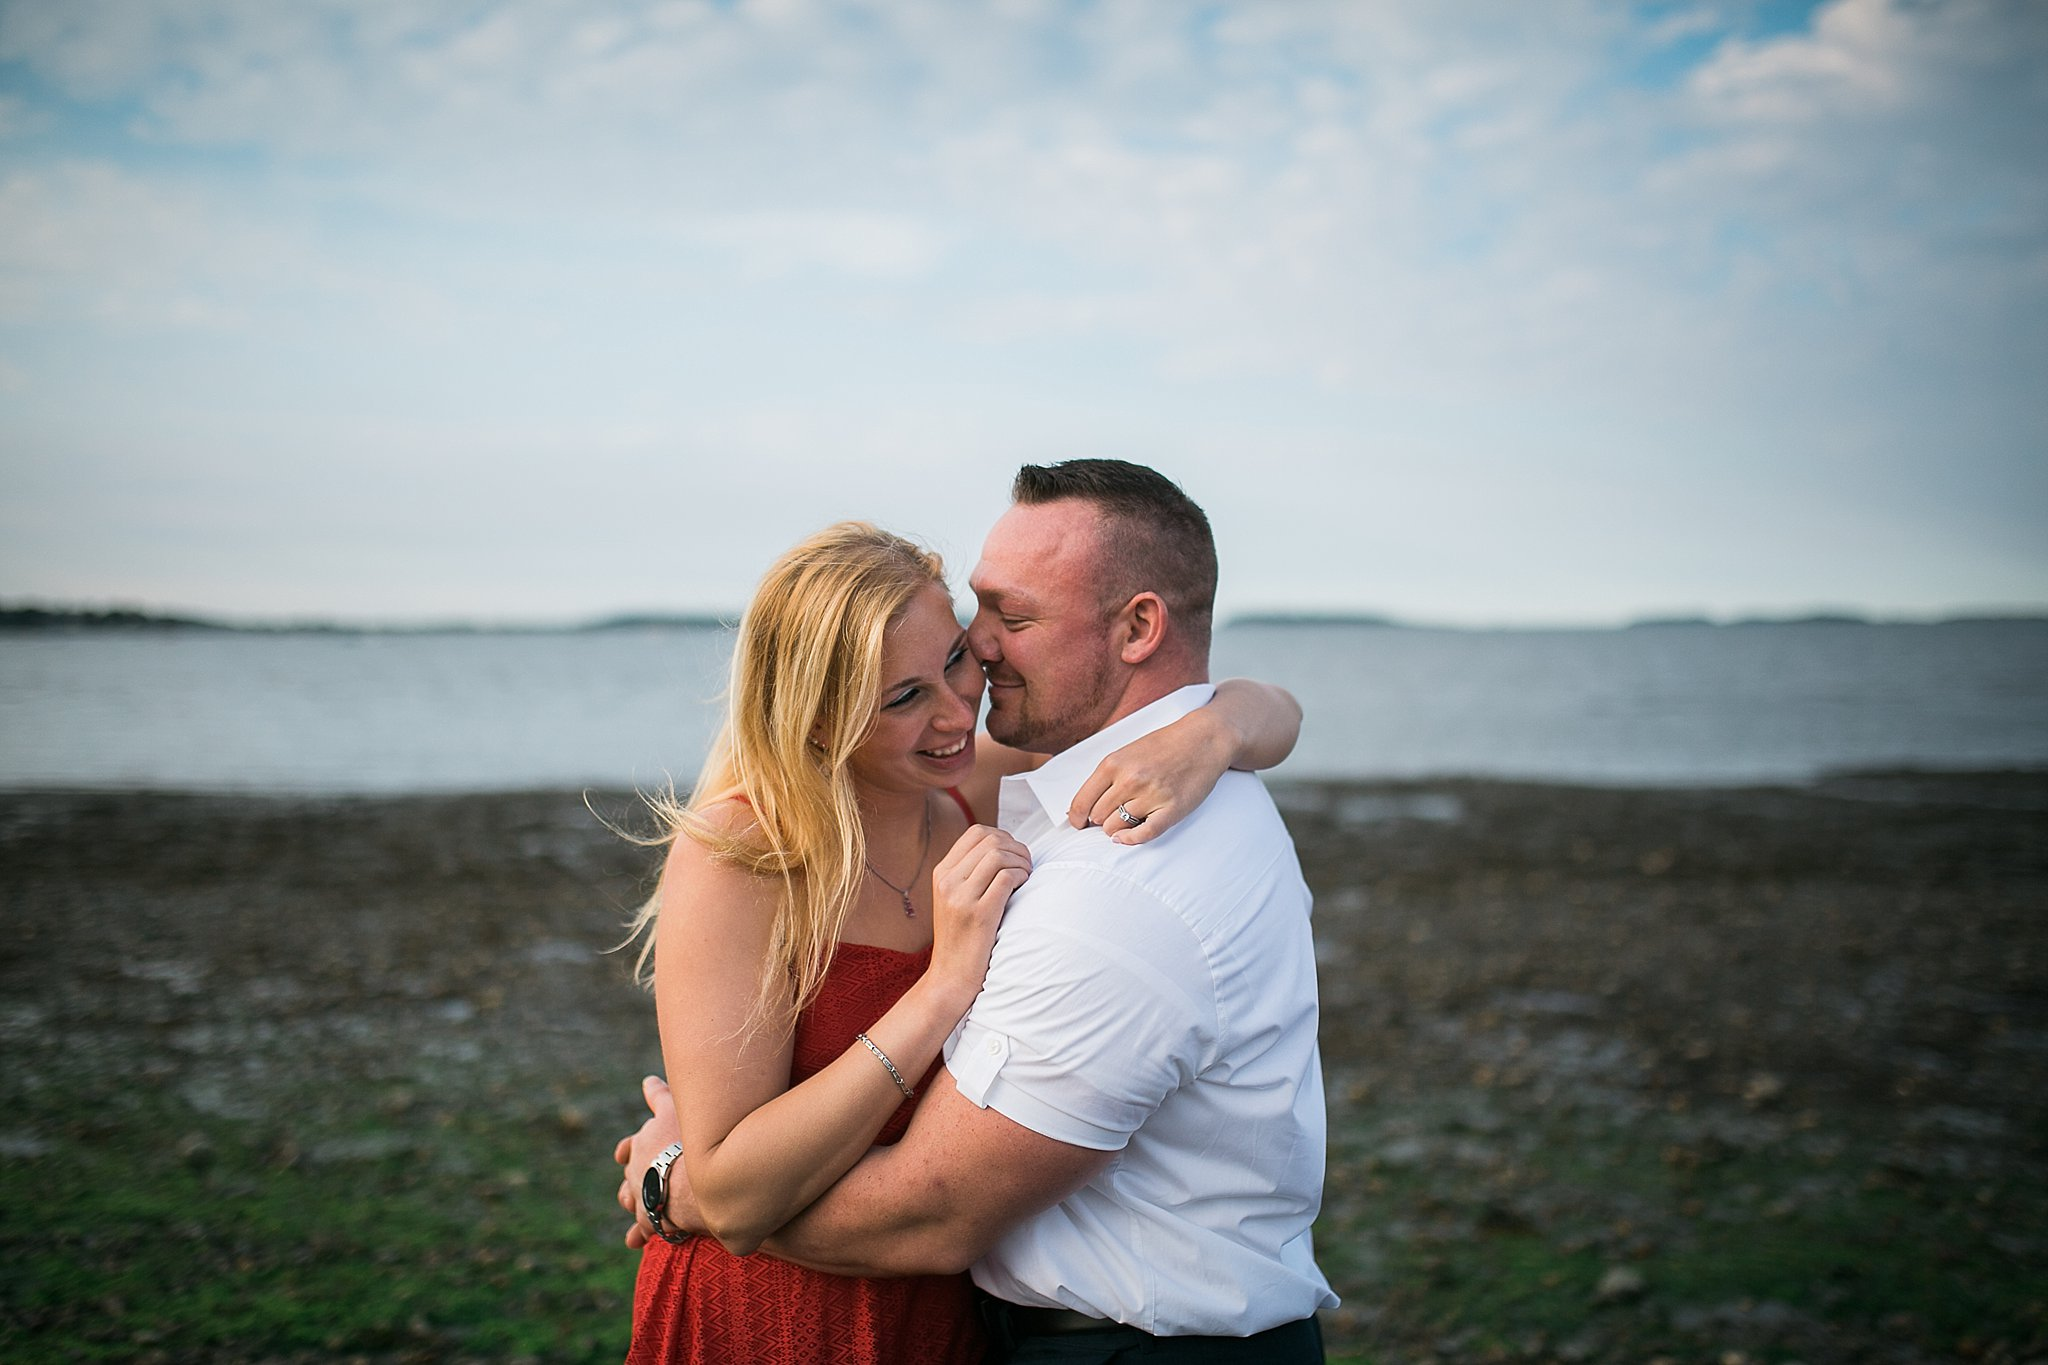 Wollaston Beach Engagement Session Sweet Alice Photography38.jpg